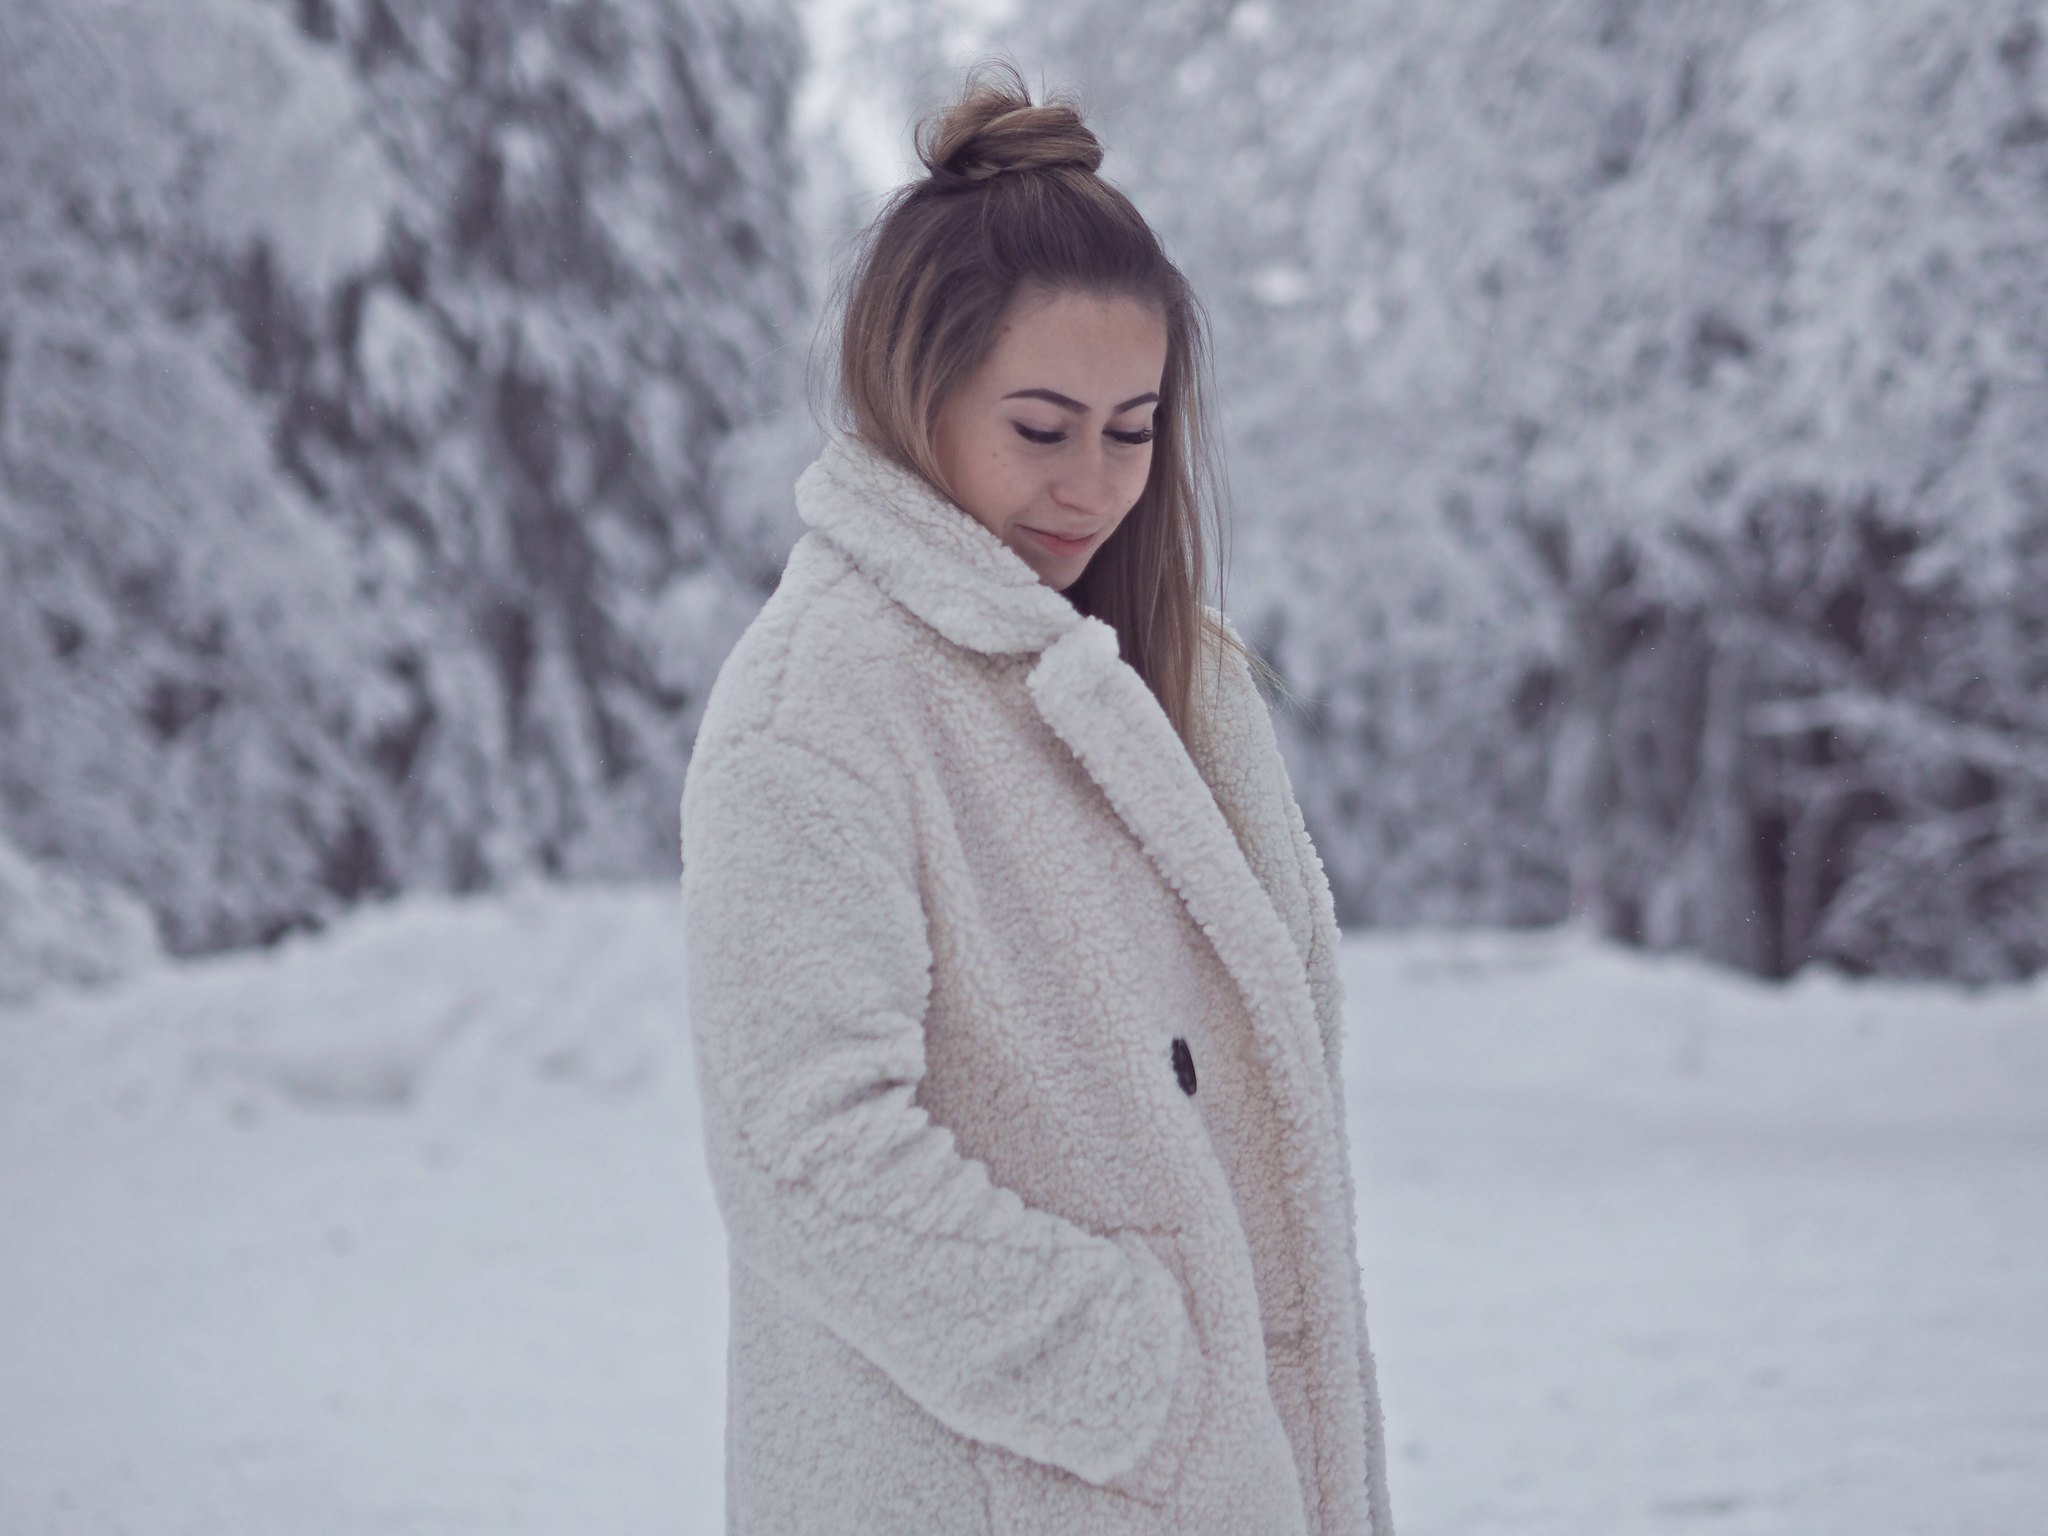 teddy coat outfit ideas winter